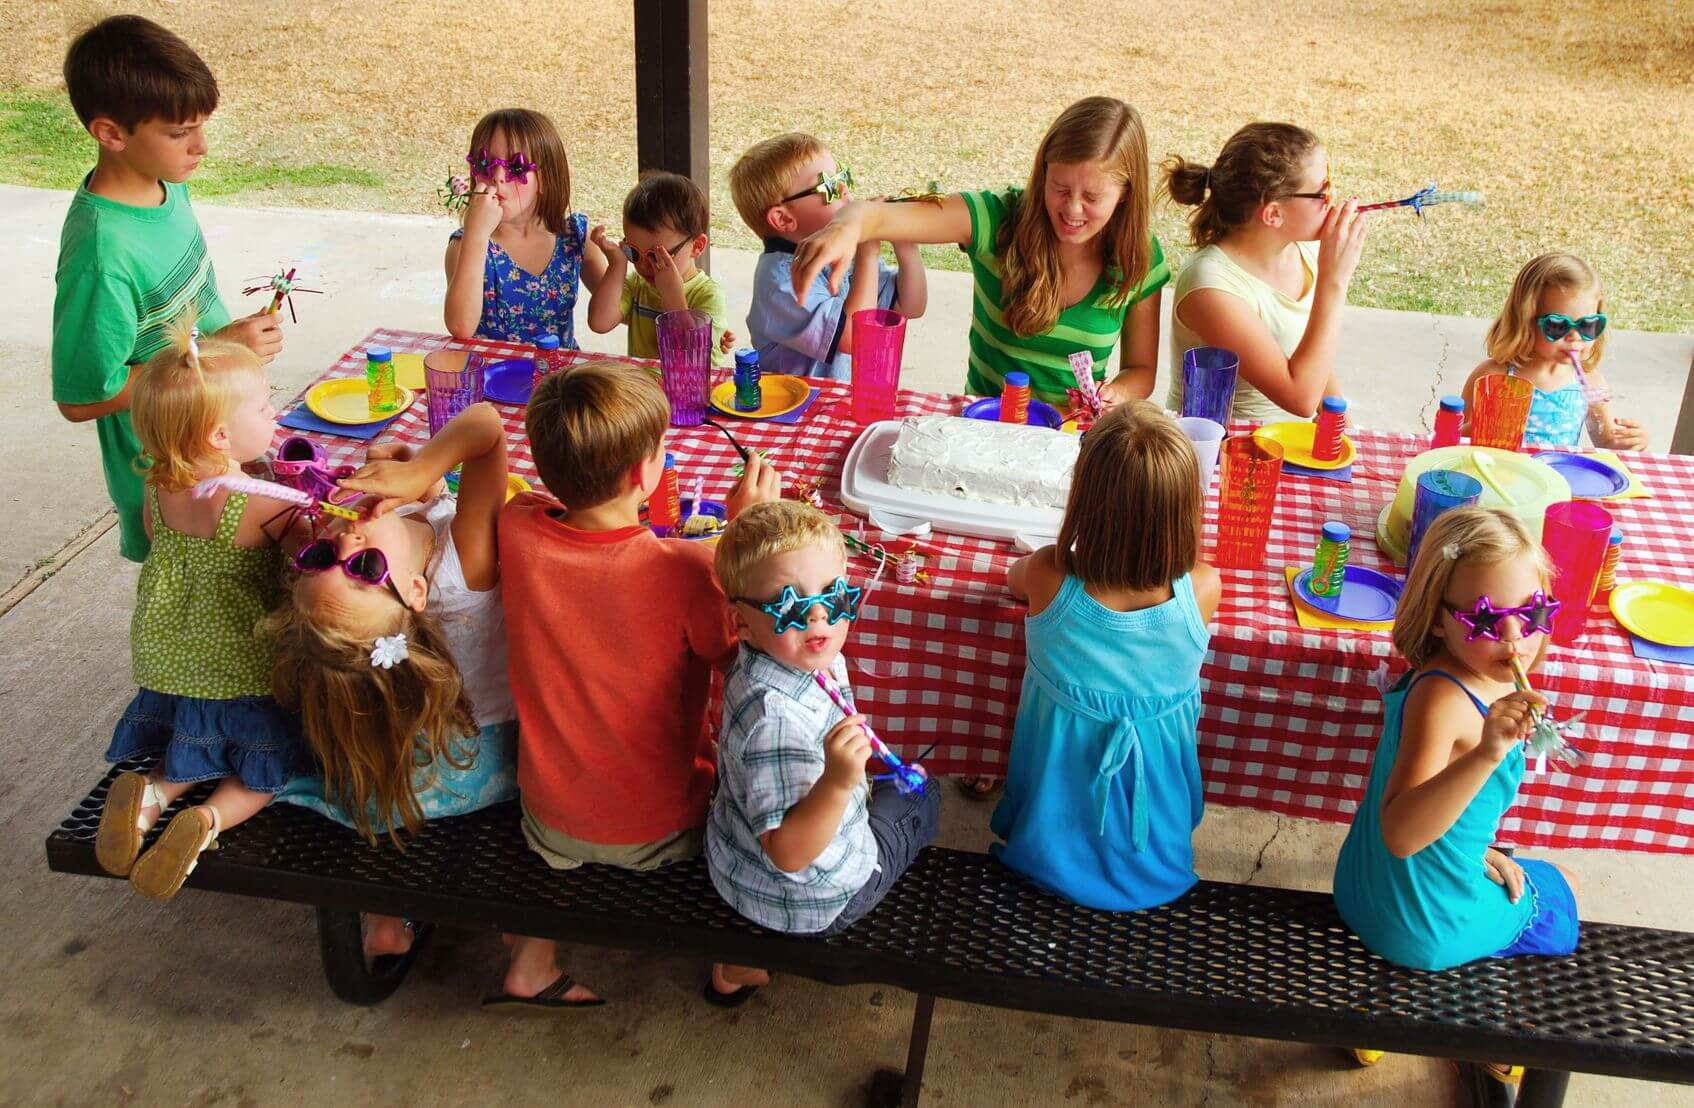 people at picnic table